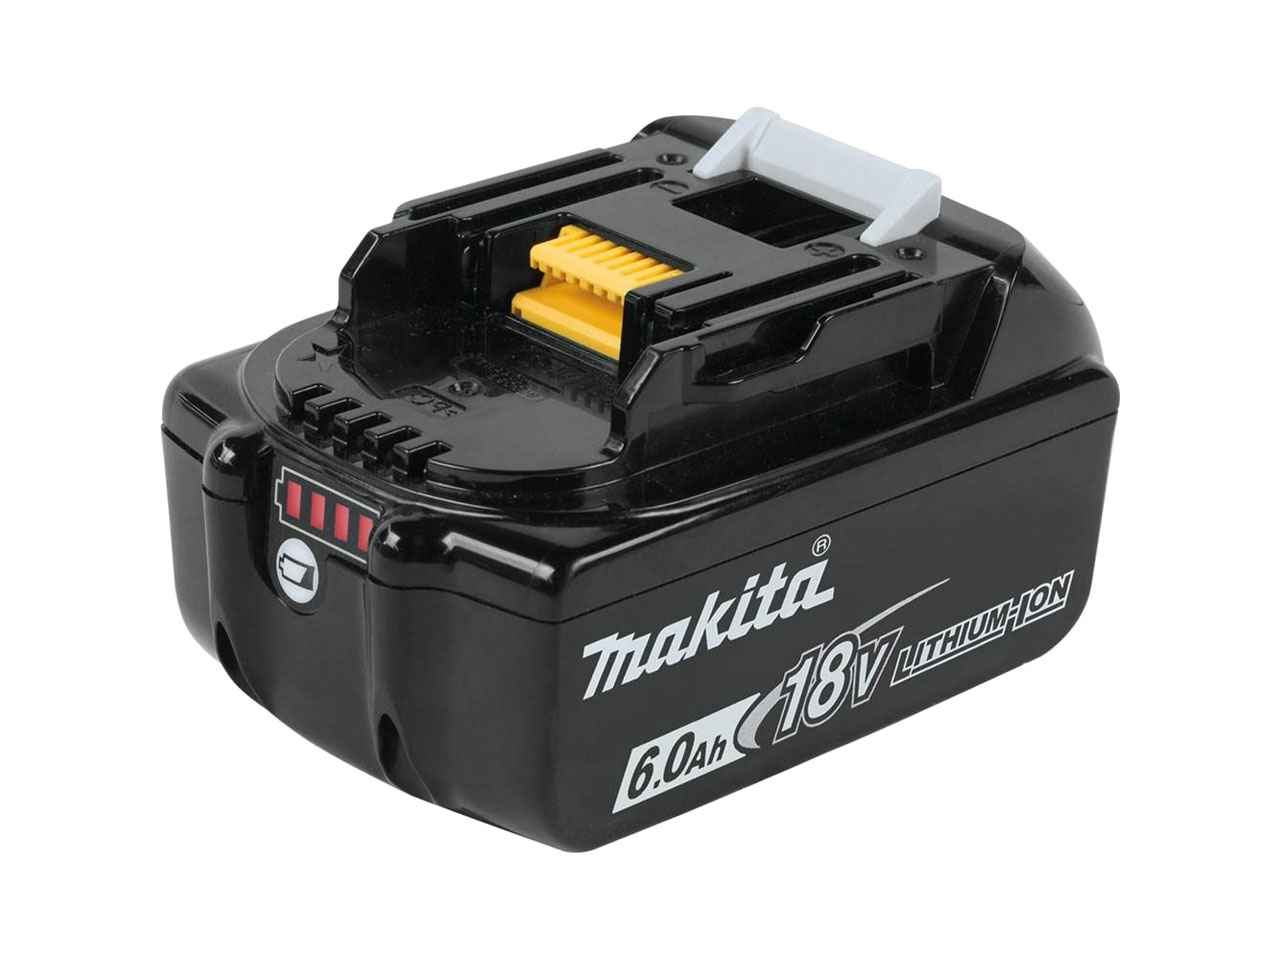 makita 197422 4 18v 6ah lxt li ion genuine makstar battery pack ebay. Black Bedroom Furniture Sets. Home Design Ideas